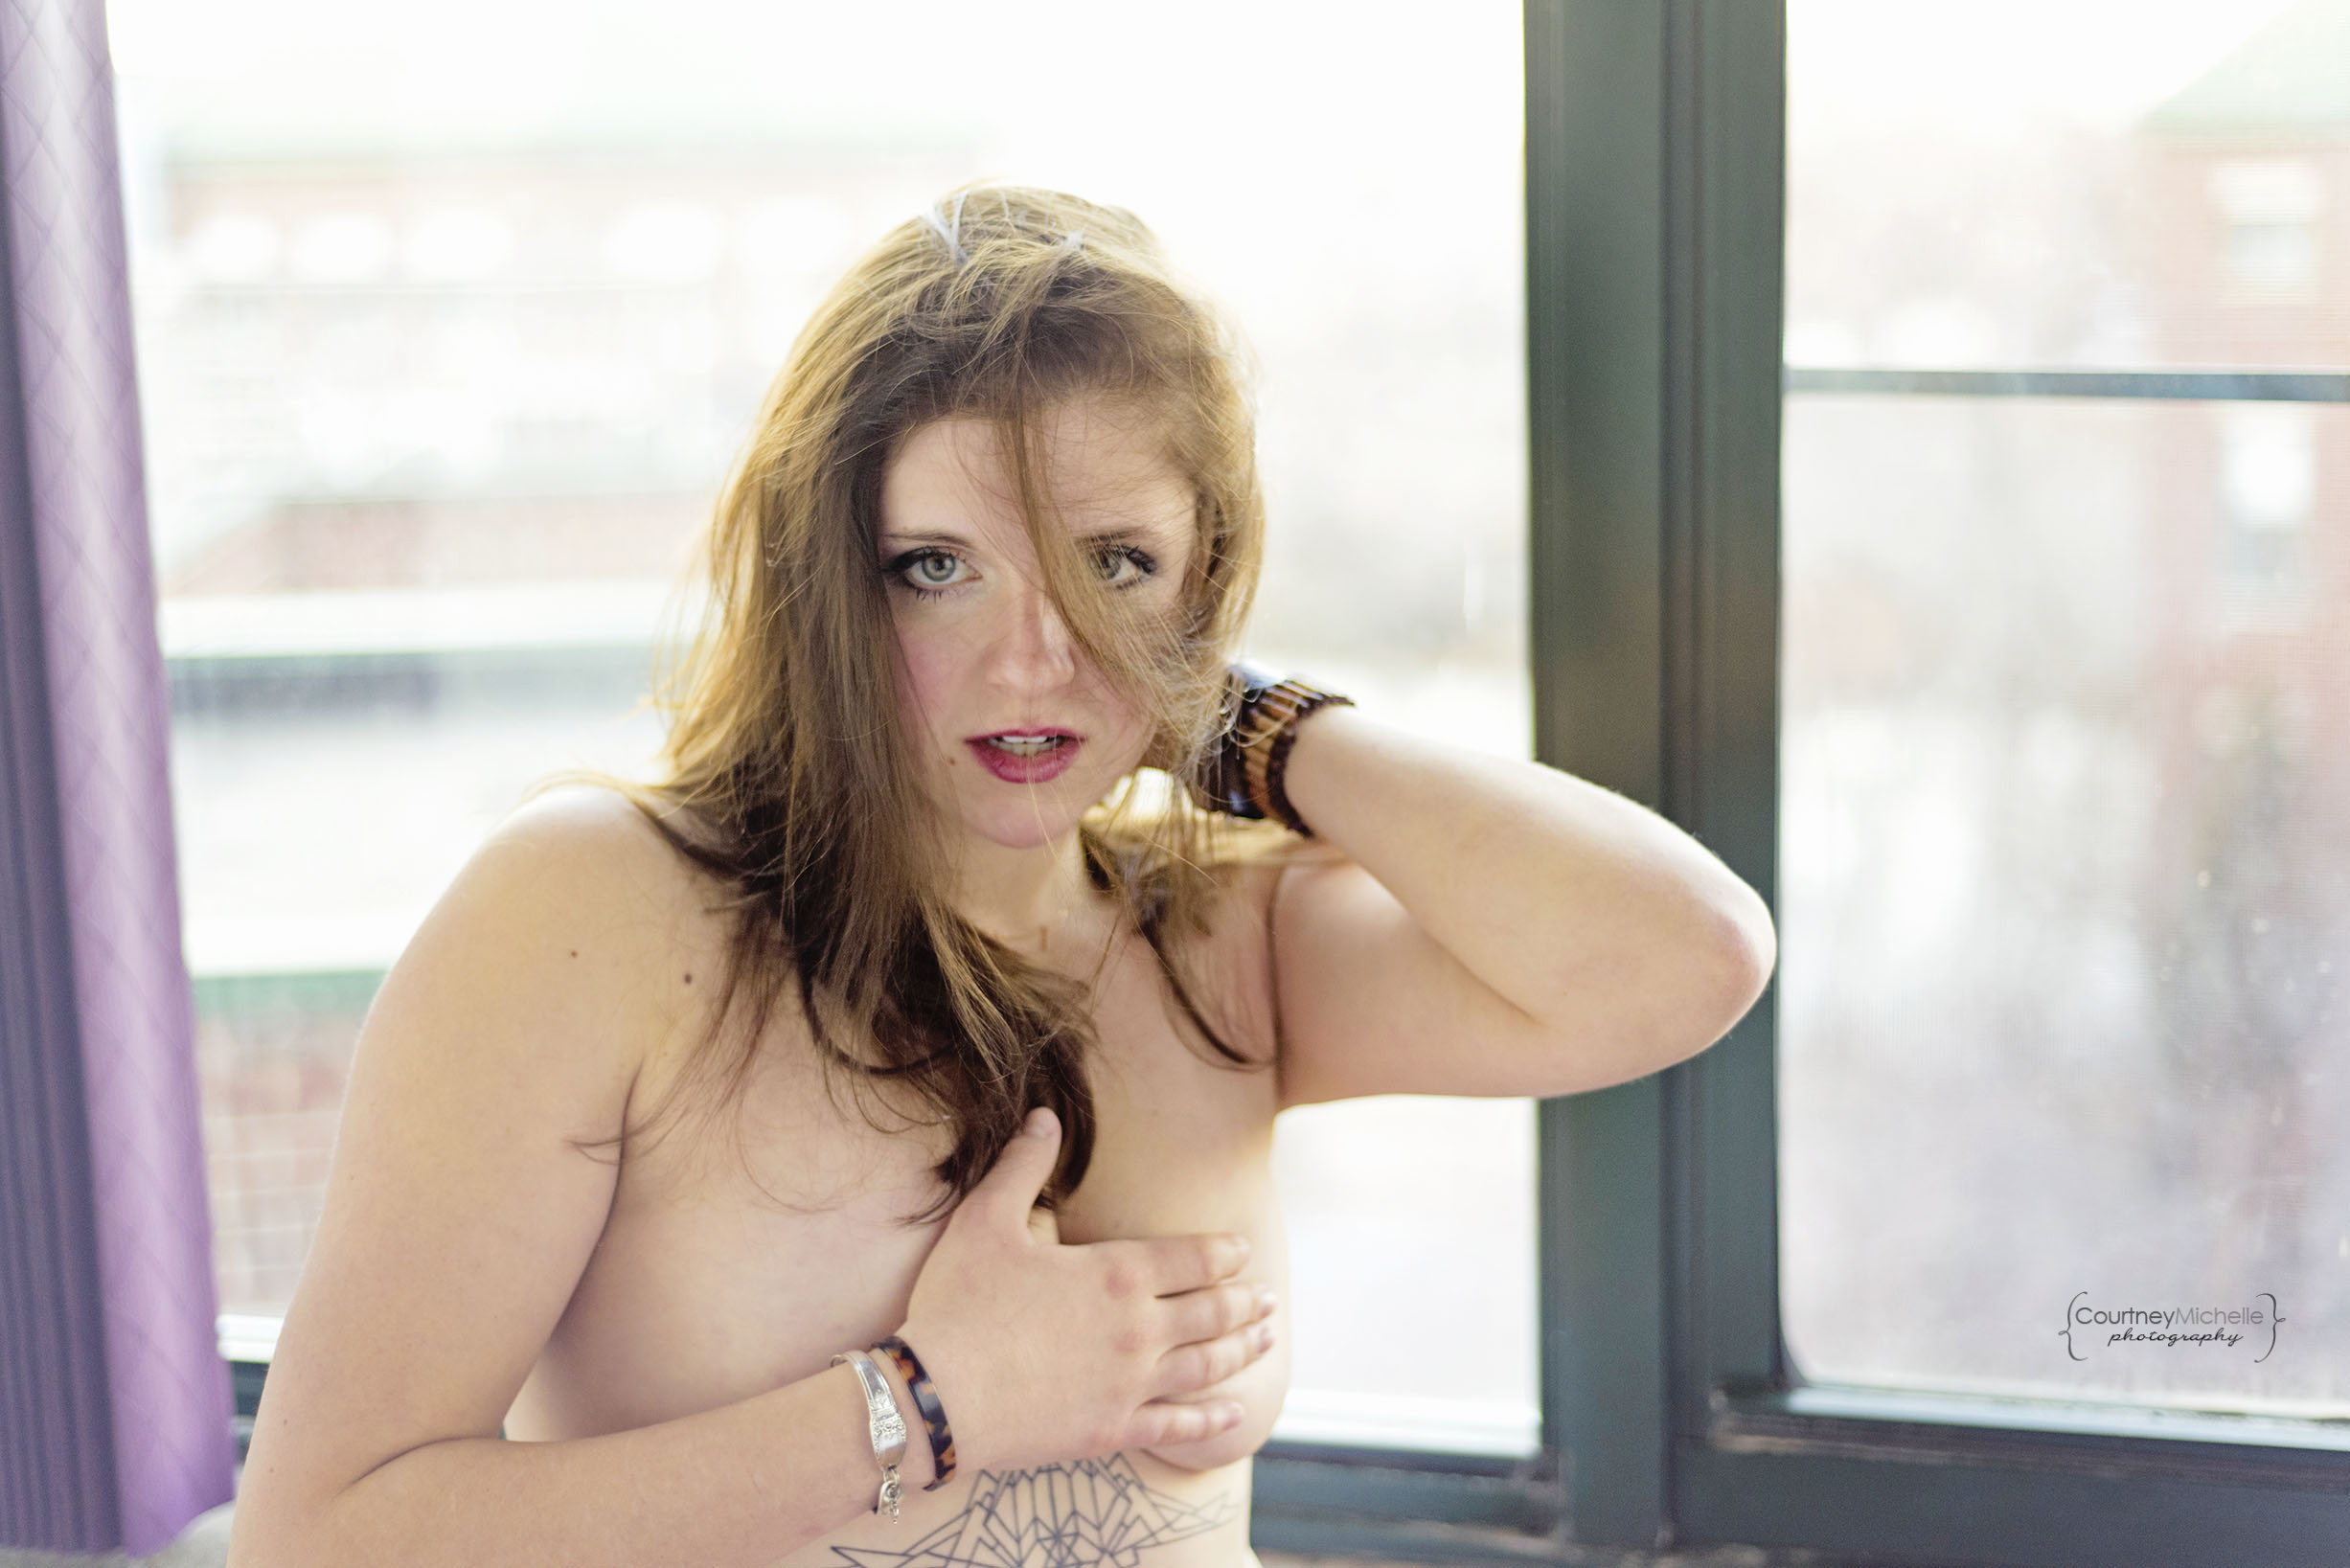 woman-backlit-in-front-of-big-windows-chicago-boudoir-photography-by-courtney-laper.jpg